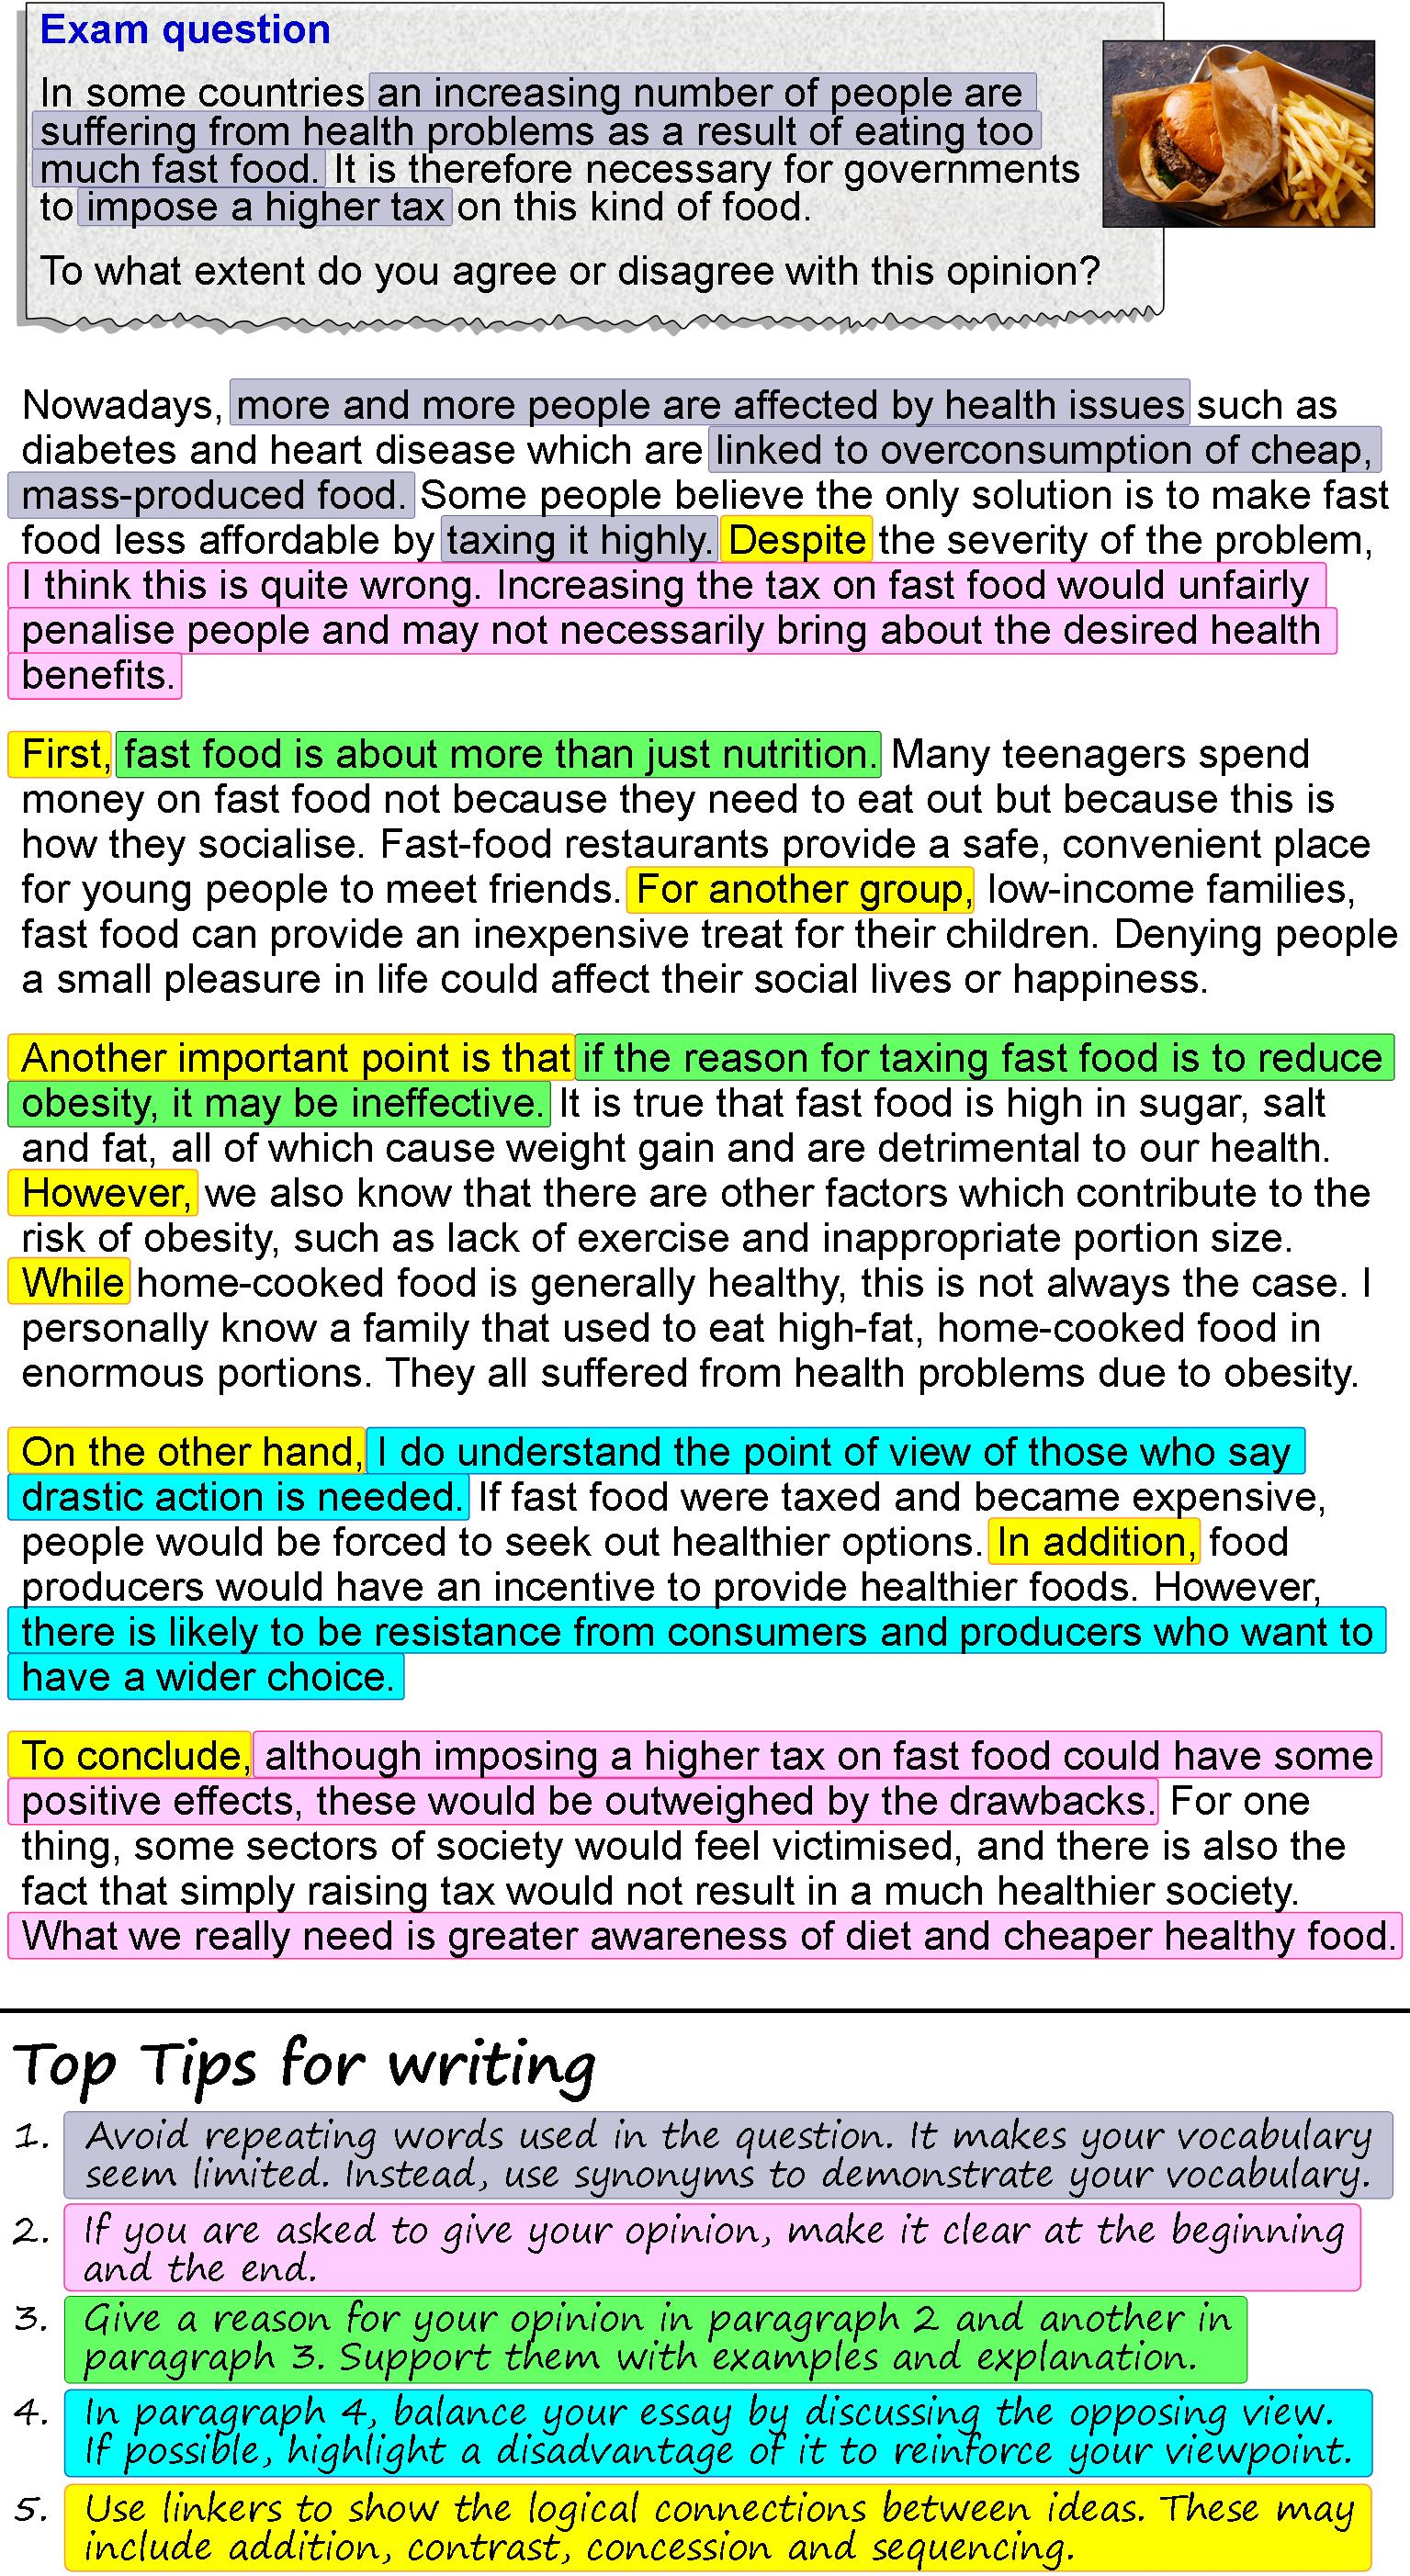 001 Opinion Essay About Fast Food Example An 4 Unbelievable British Council Is A Good Alternative To Cooking For Yourself Full